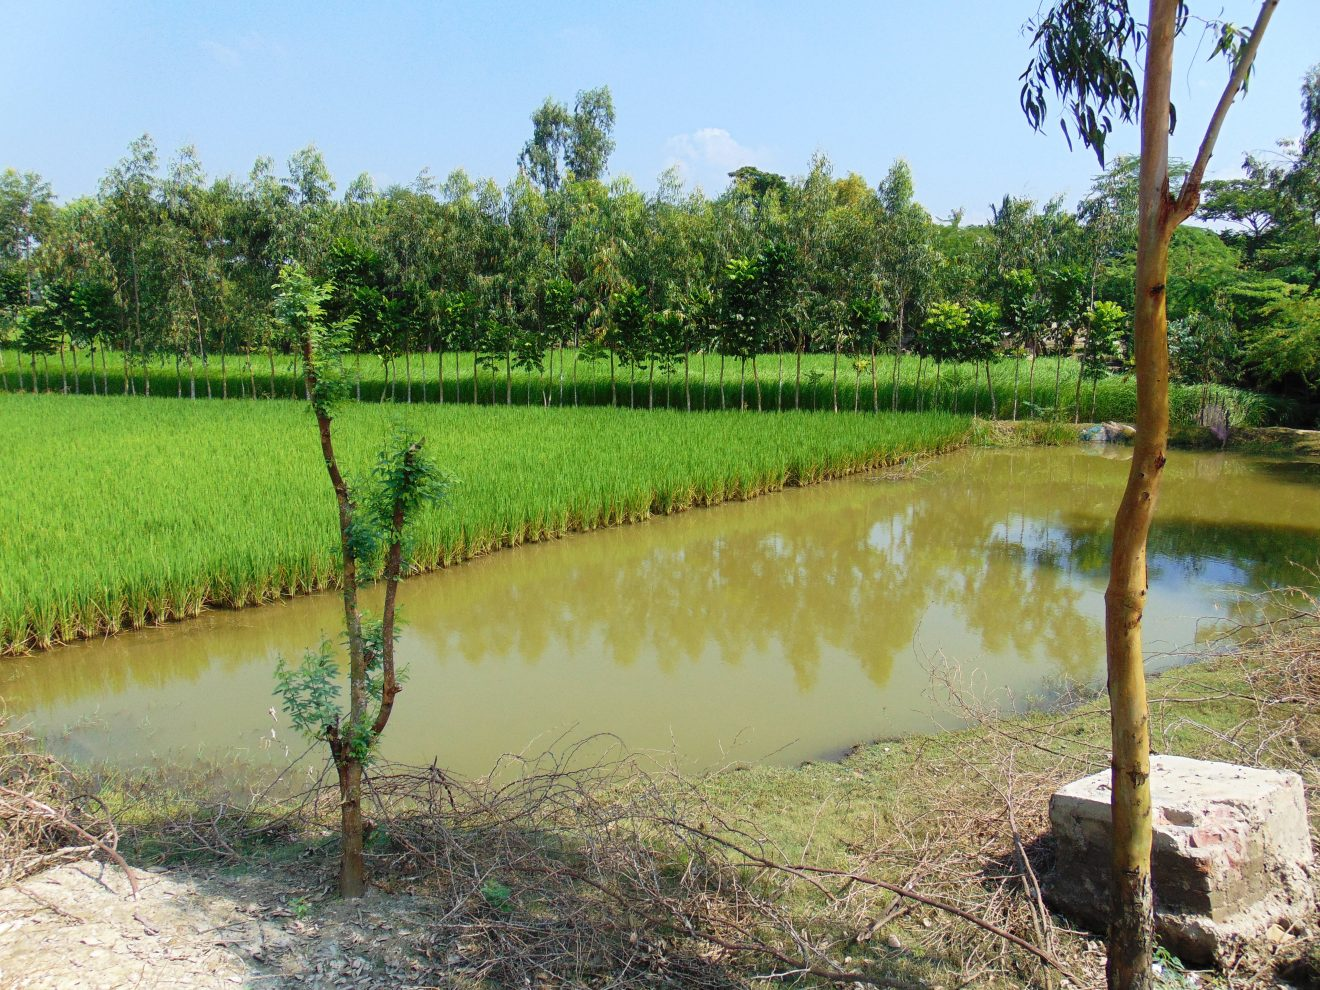 Paddy-fish-tree integrated farming in Sundarban World Heritage-the tansition of landscape to seascape in delta - a segment of landscape